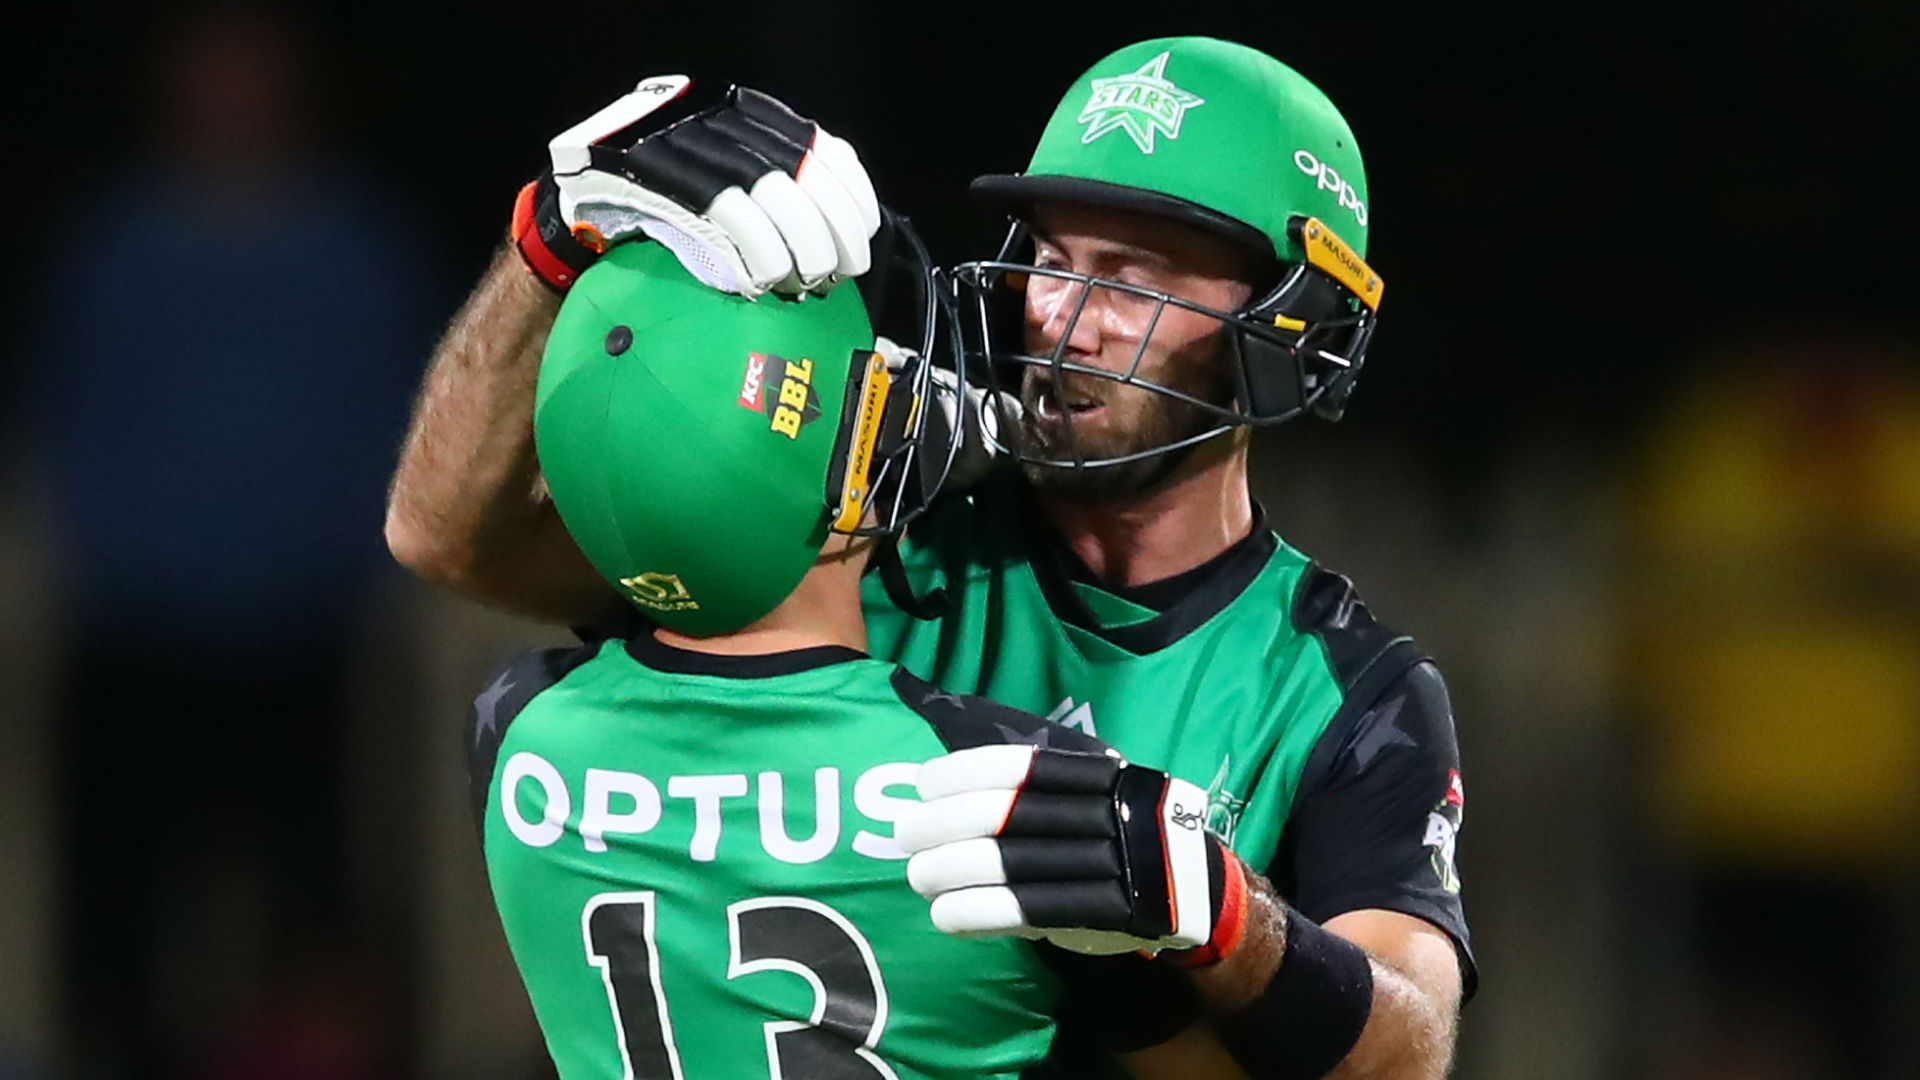 Stars into second BBL final as Hurricanes crash out